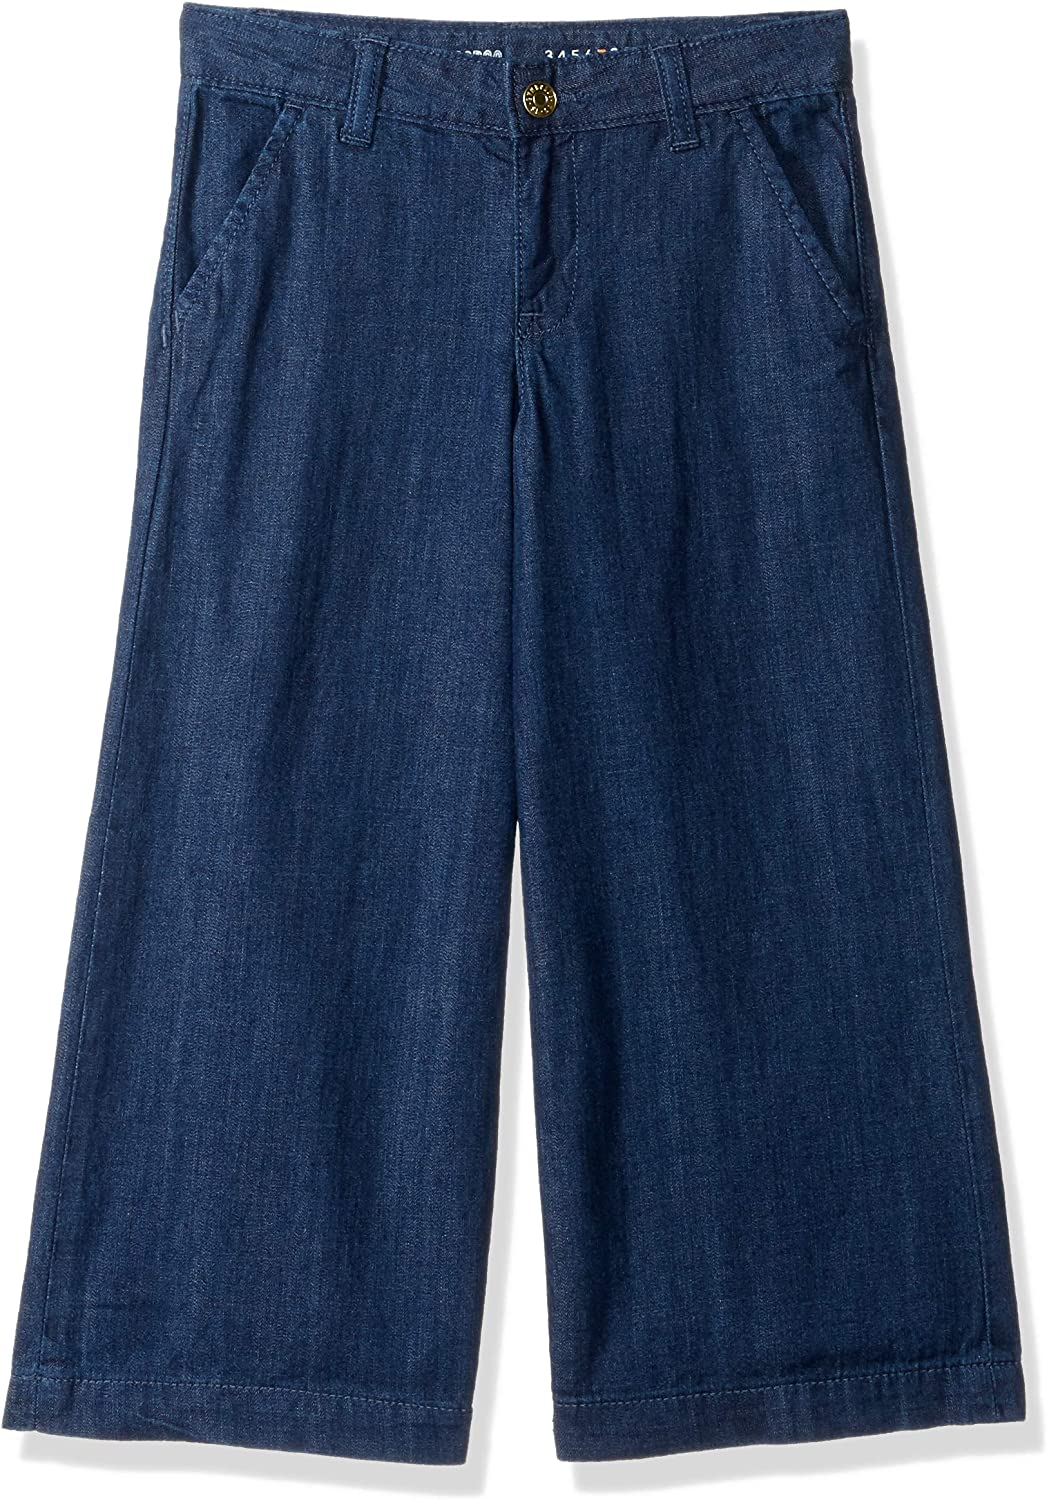 Gymboree Girls' All stores are sold Big National uniform free shipping Culotte Pants